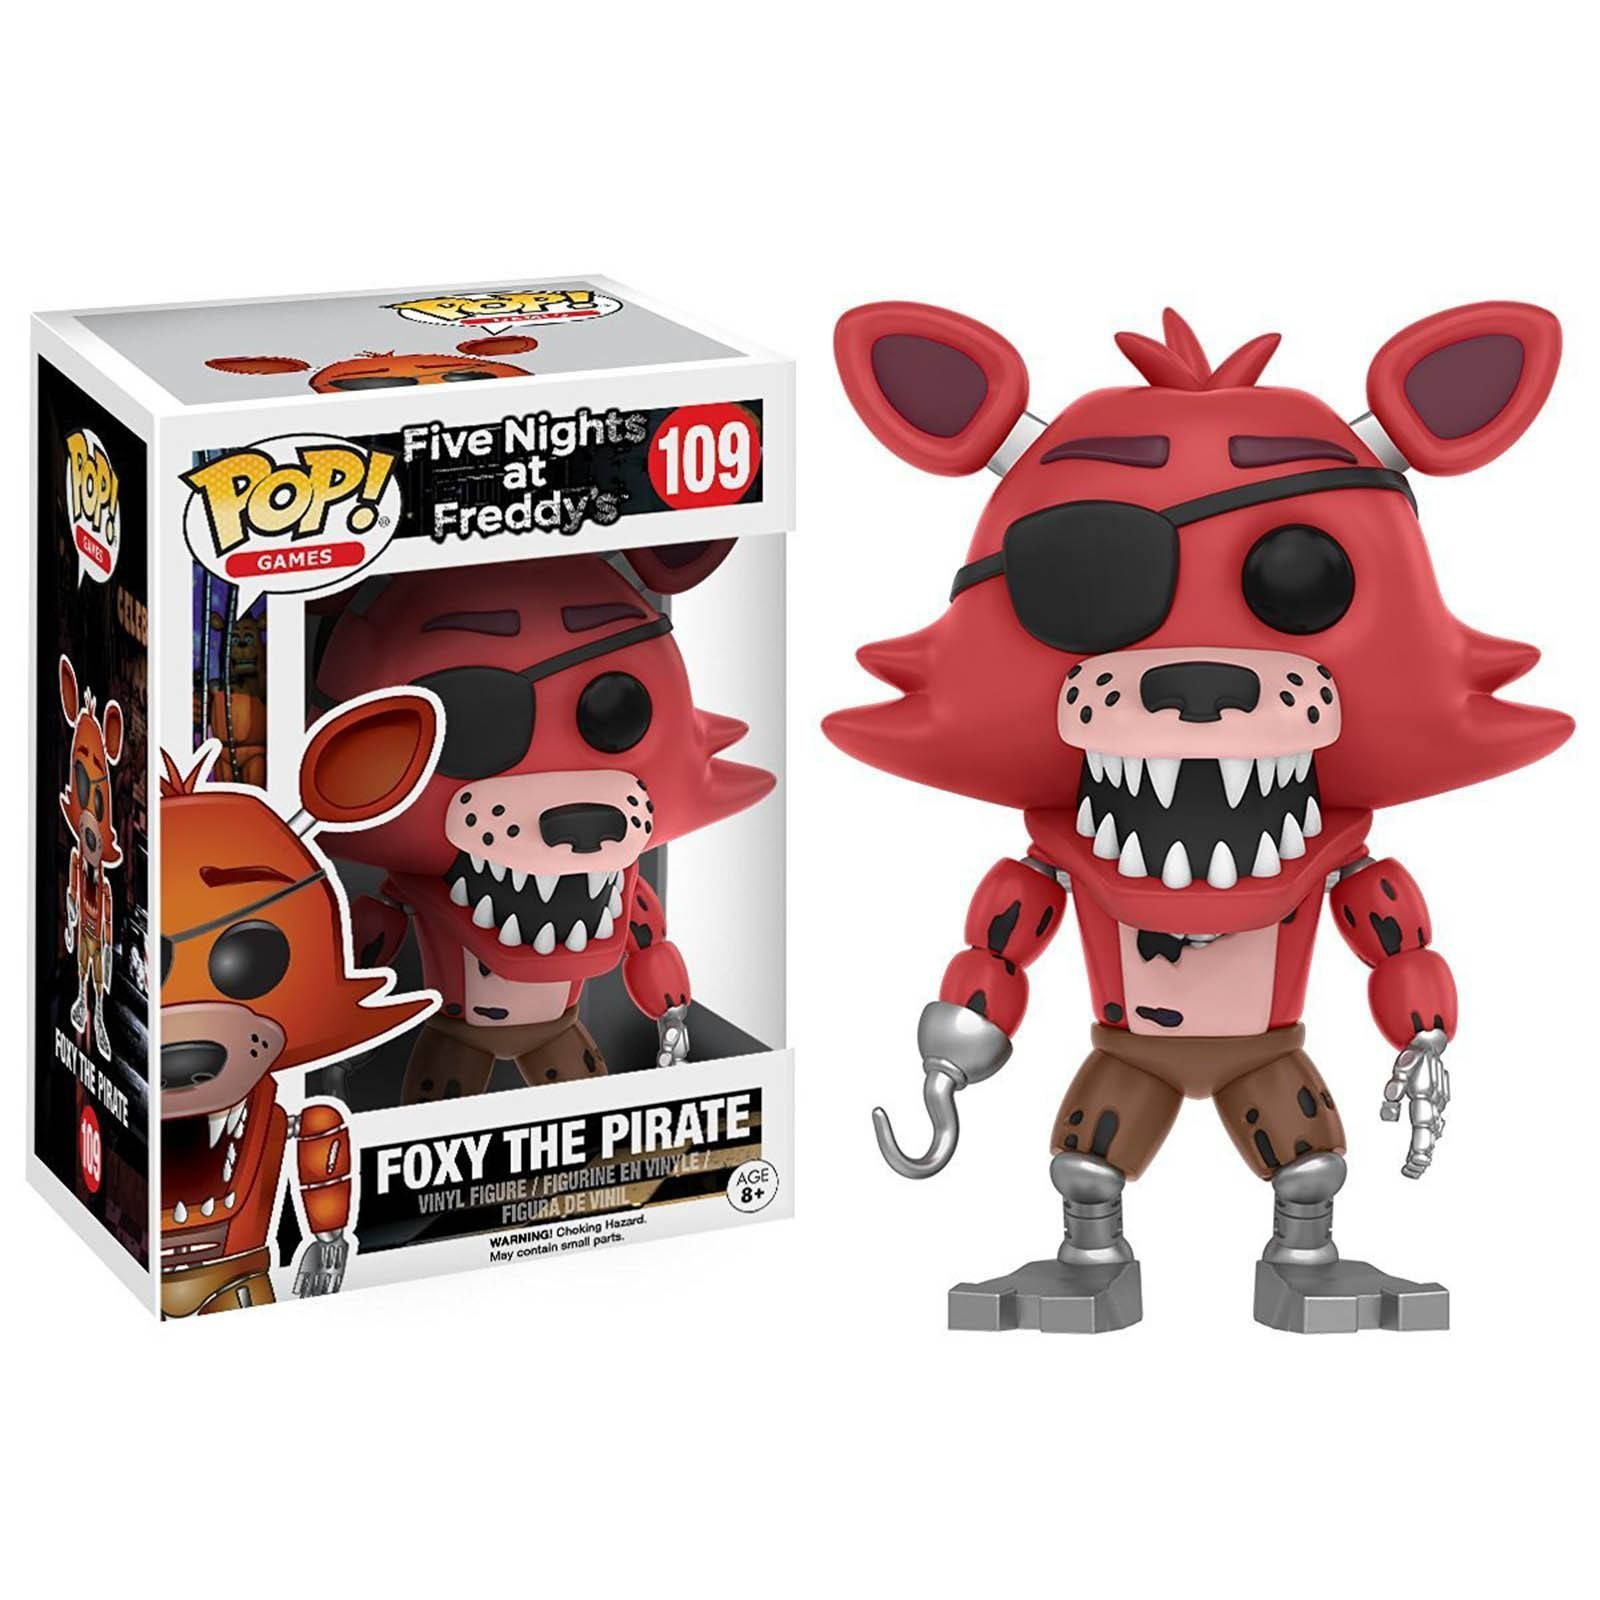 This is a Five Nights At Freddy's POP Foxy The Pirate Vinyl Figure that's produced by the nice folks over at Funko. Foxy looks awesome in Funko POP Vinyl form. Neat for any fan of Five Nights at Fredd